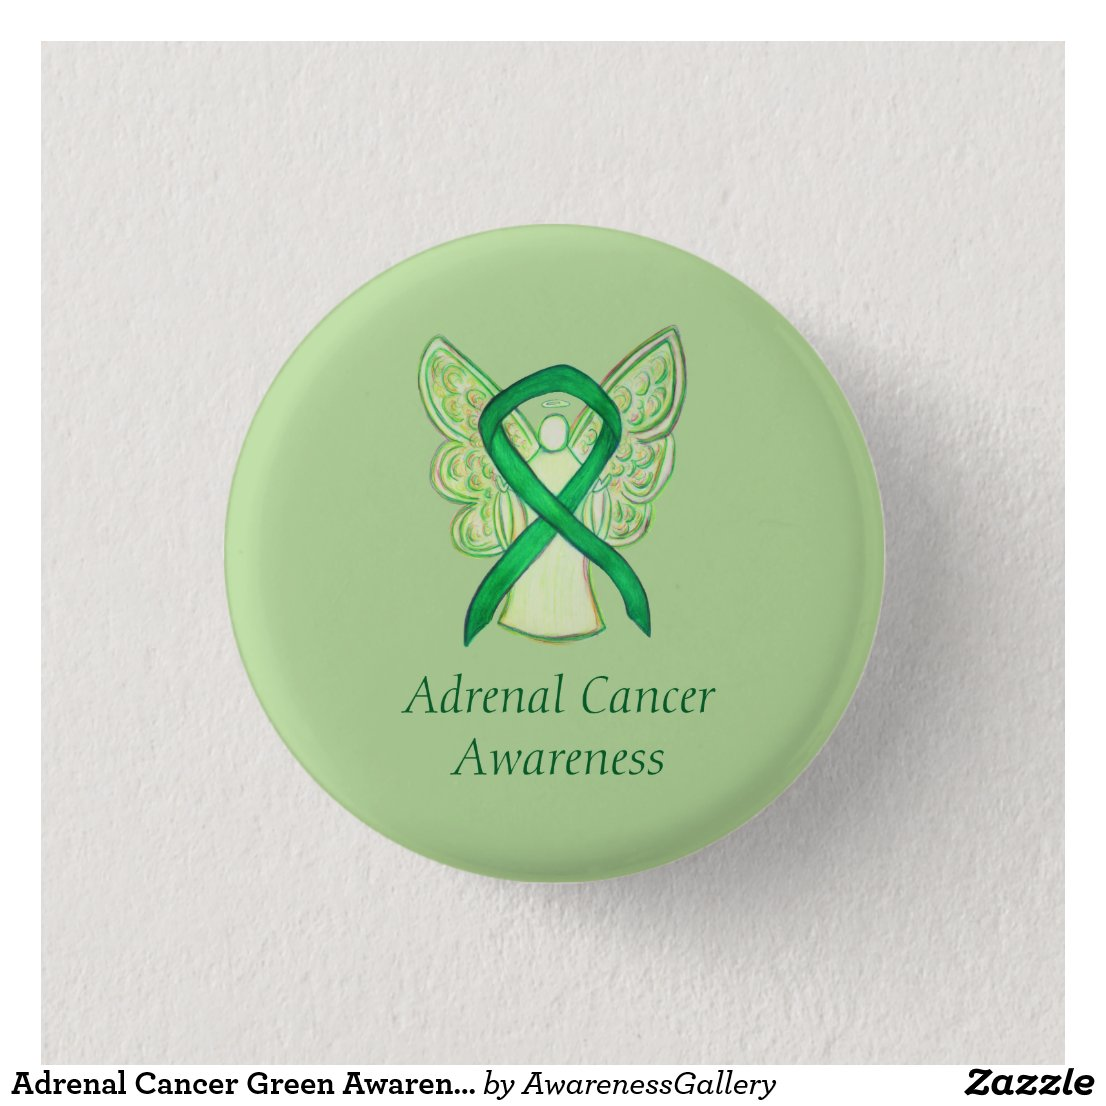 Adrenal Cancer Green Awareness Ribbon Angel Pin